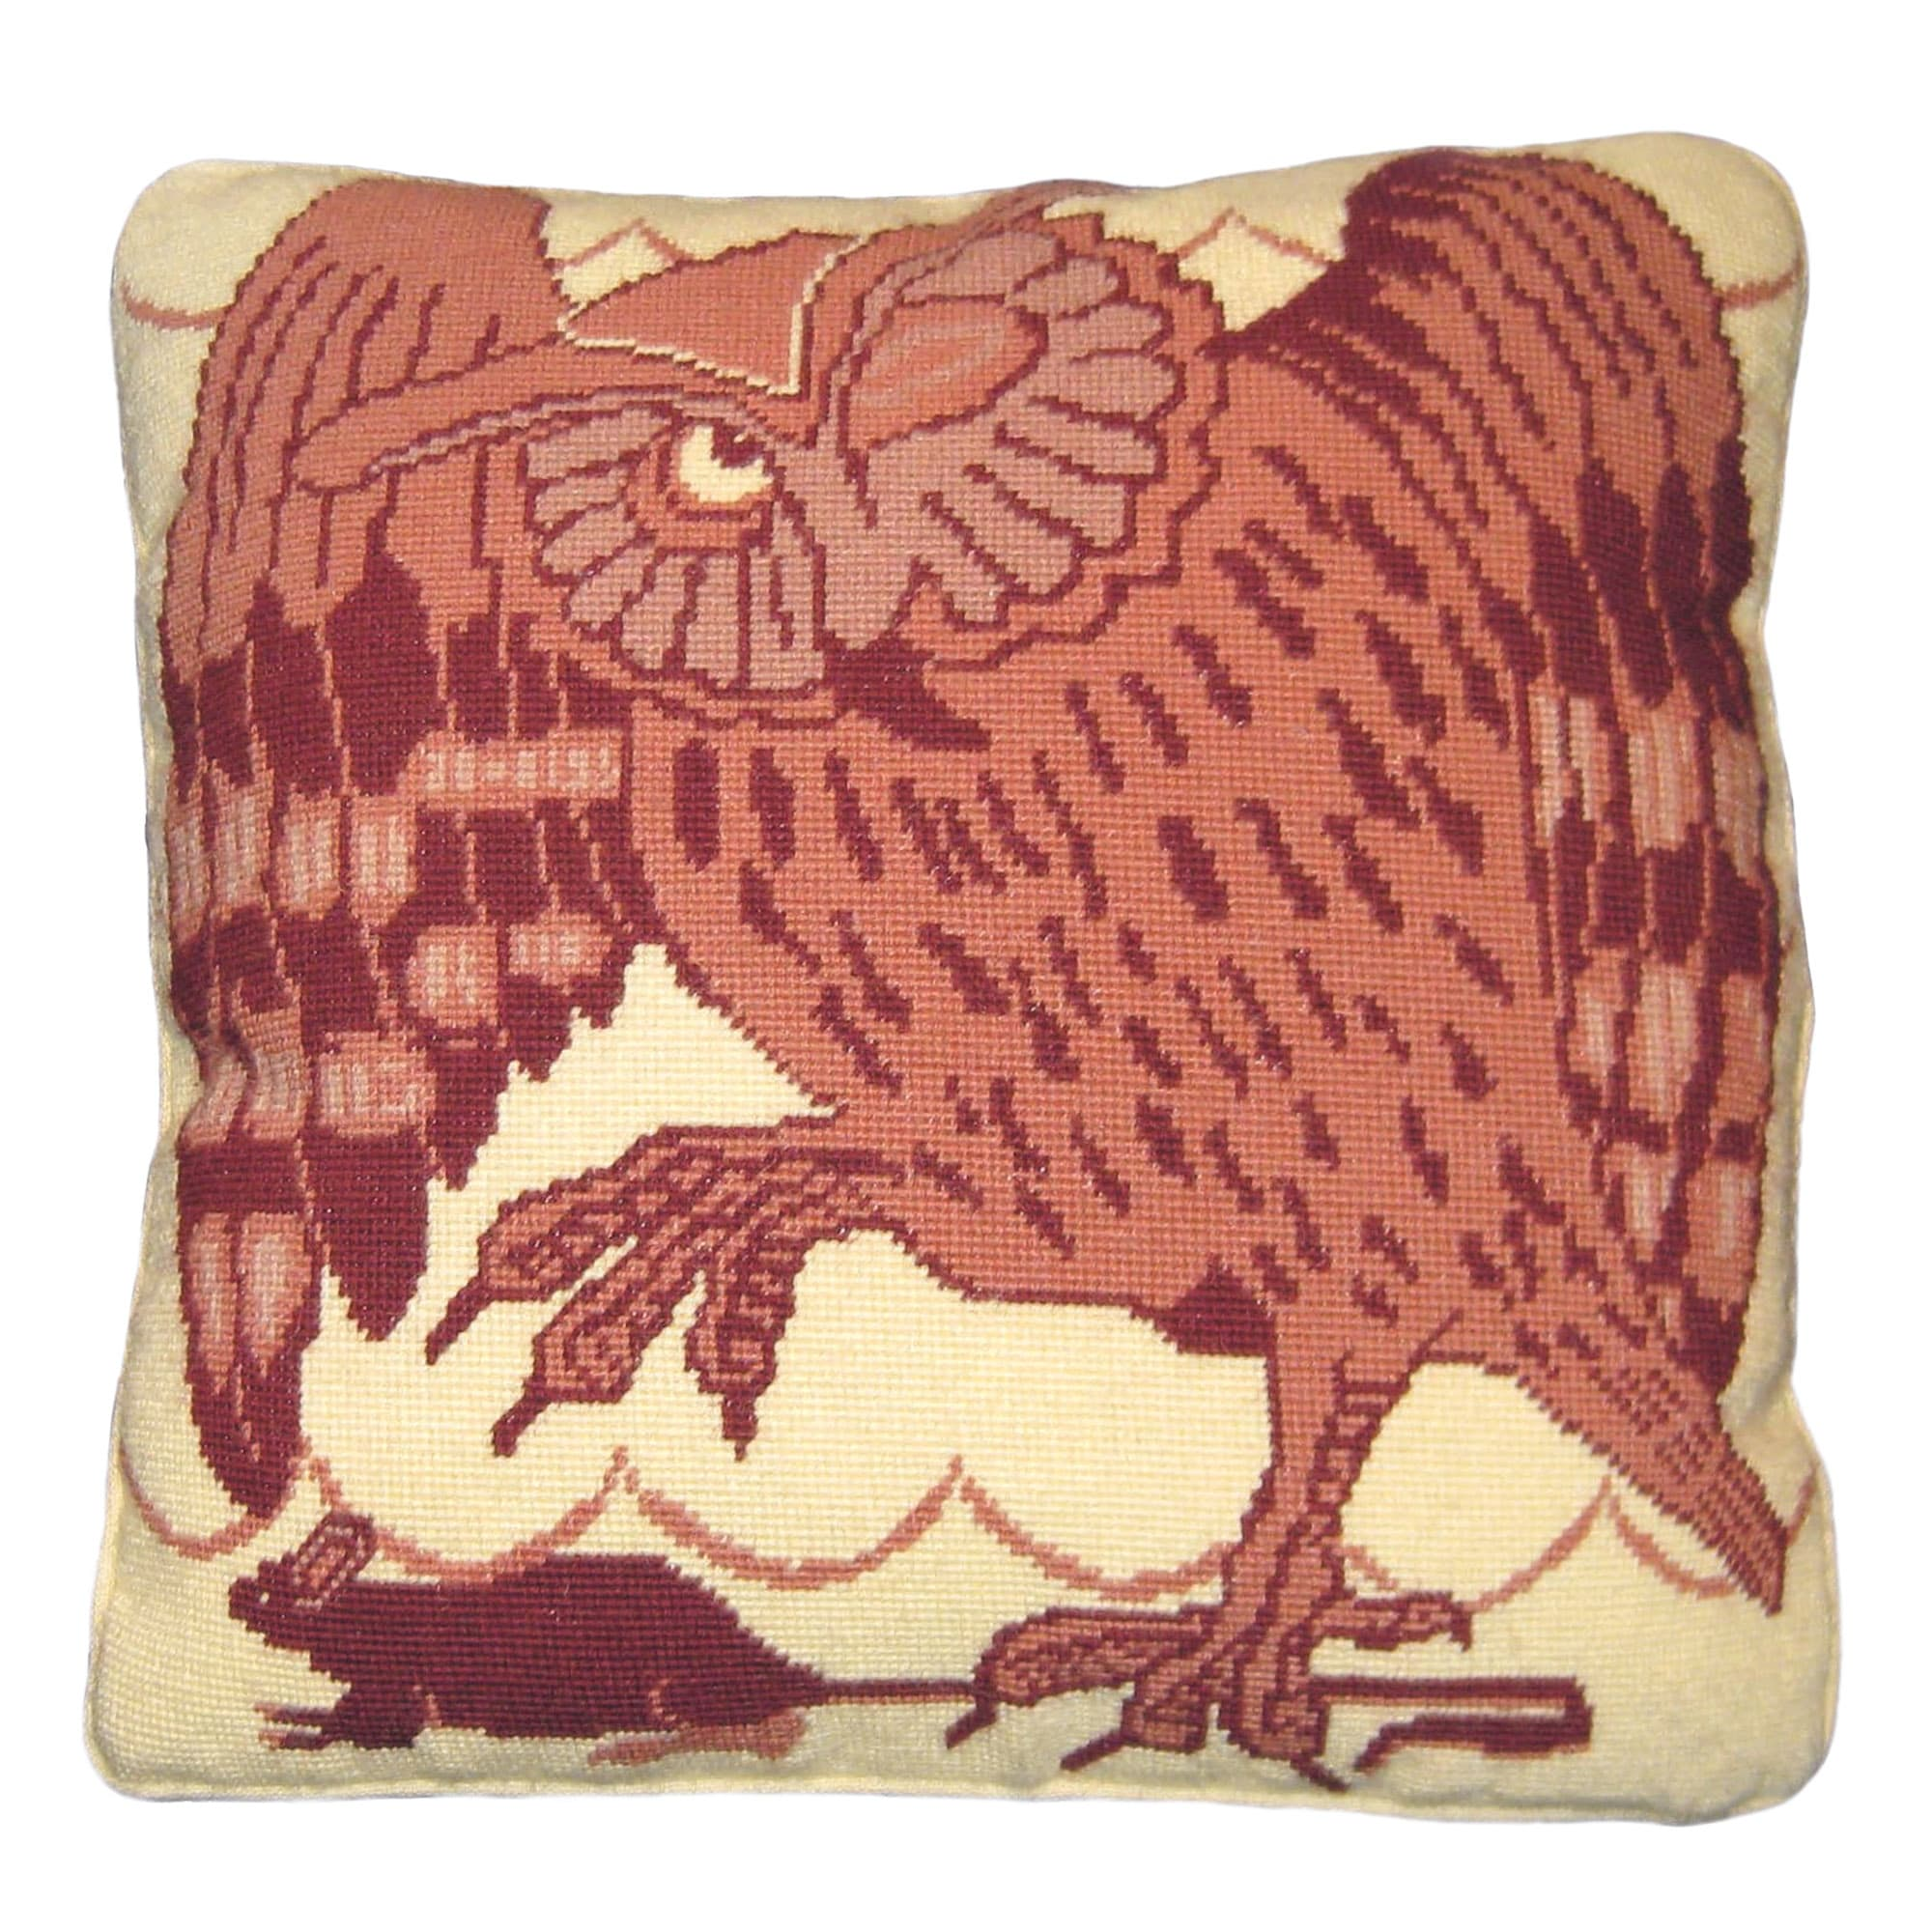 Fine Cell Work De Morgan Owl and Mouse Needlepoint Cushion Kit